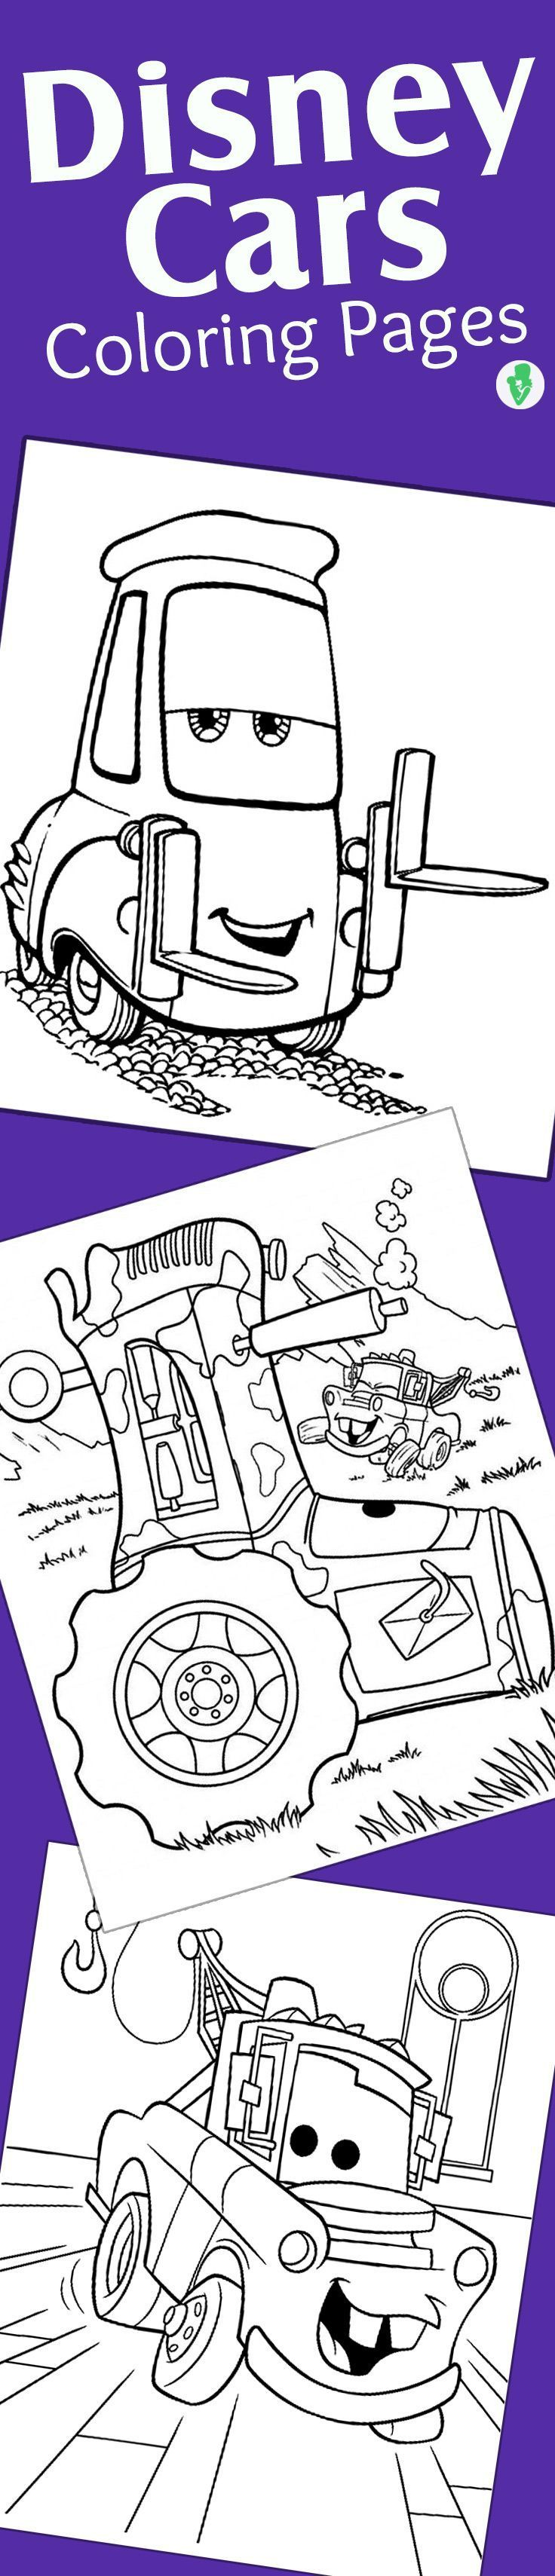 Top free printable disney cars coloring pages online funny